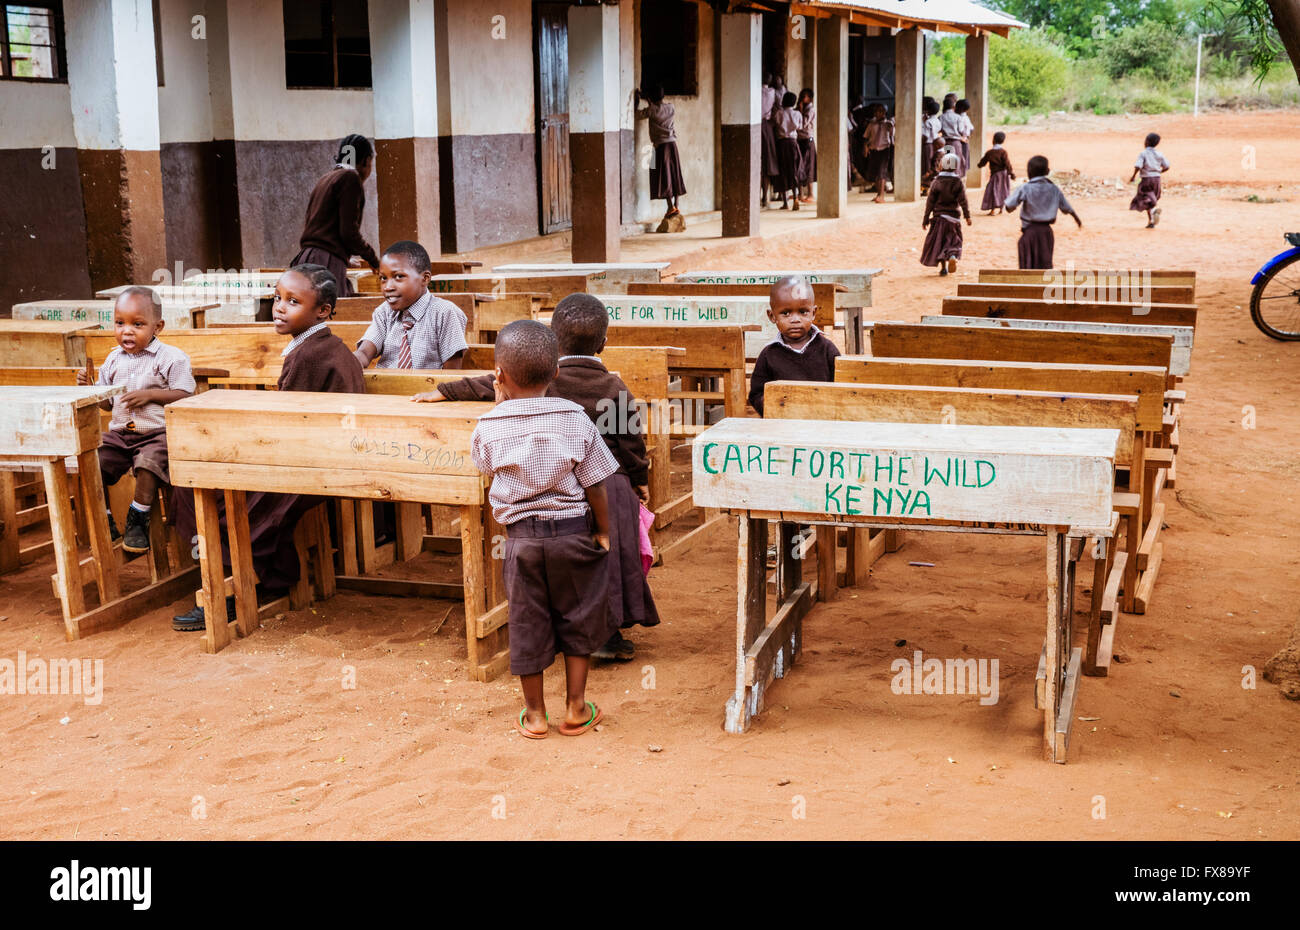 Children at charity desks set outdoors in a primary school near Voi in Southern Kenya - Stock Image